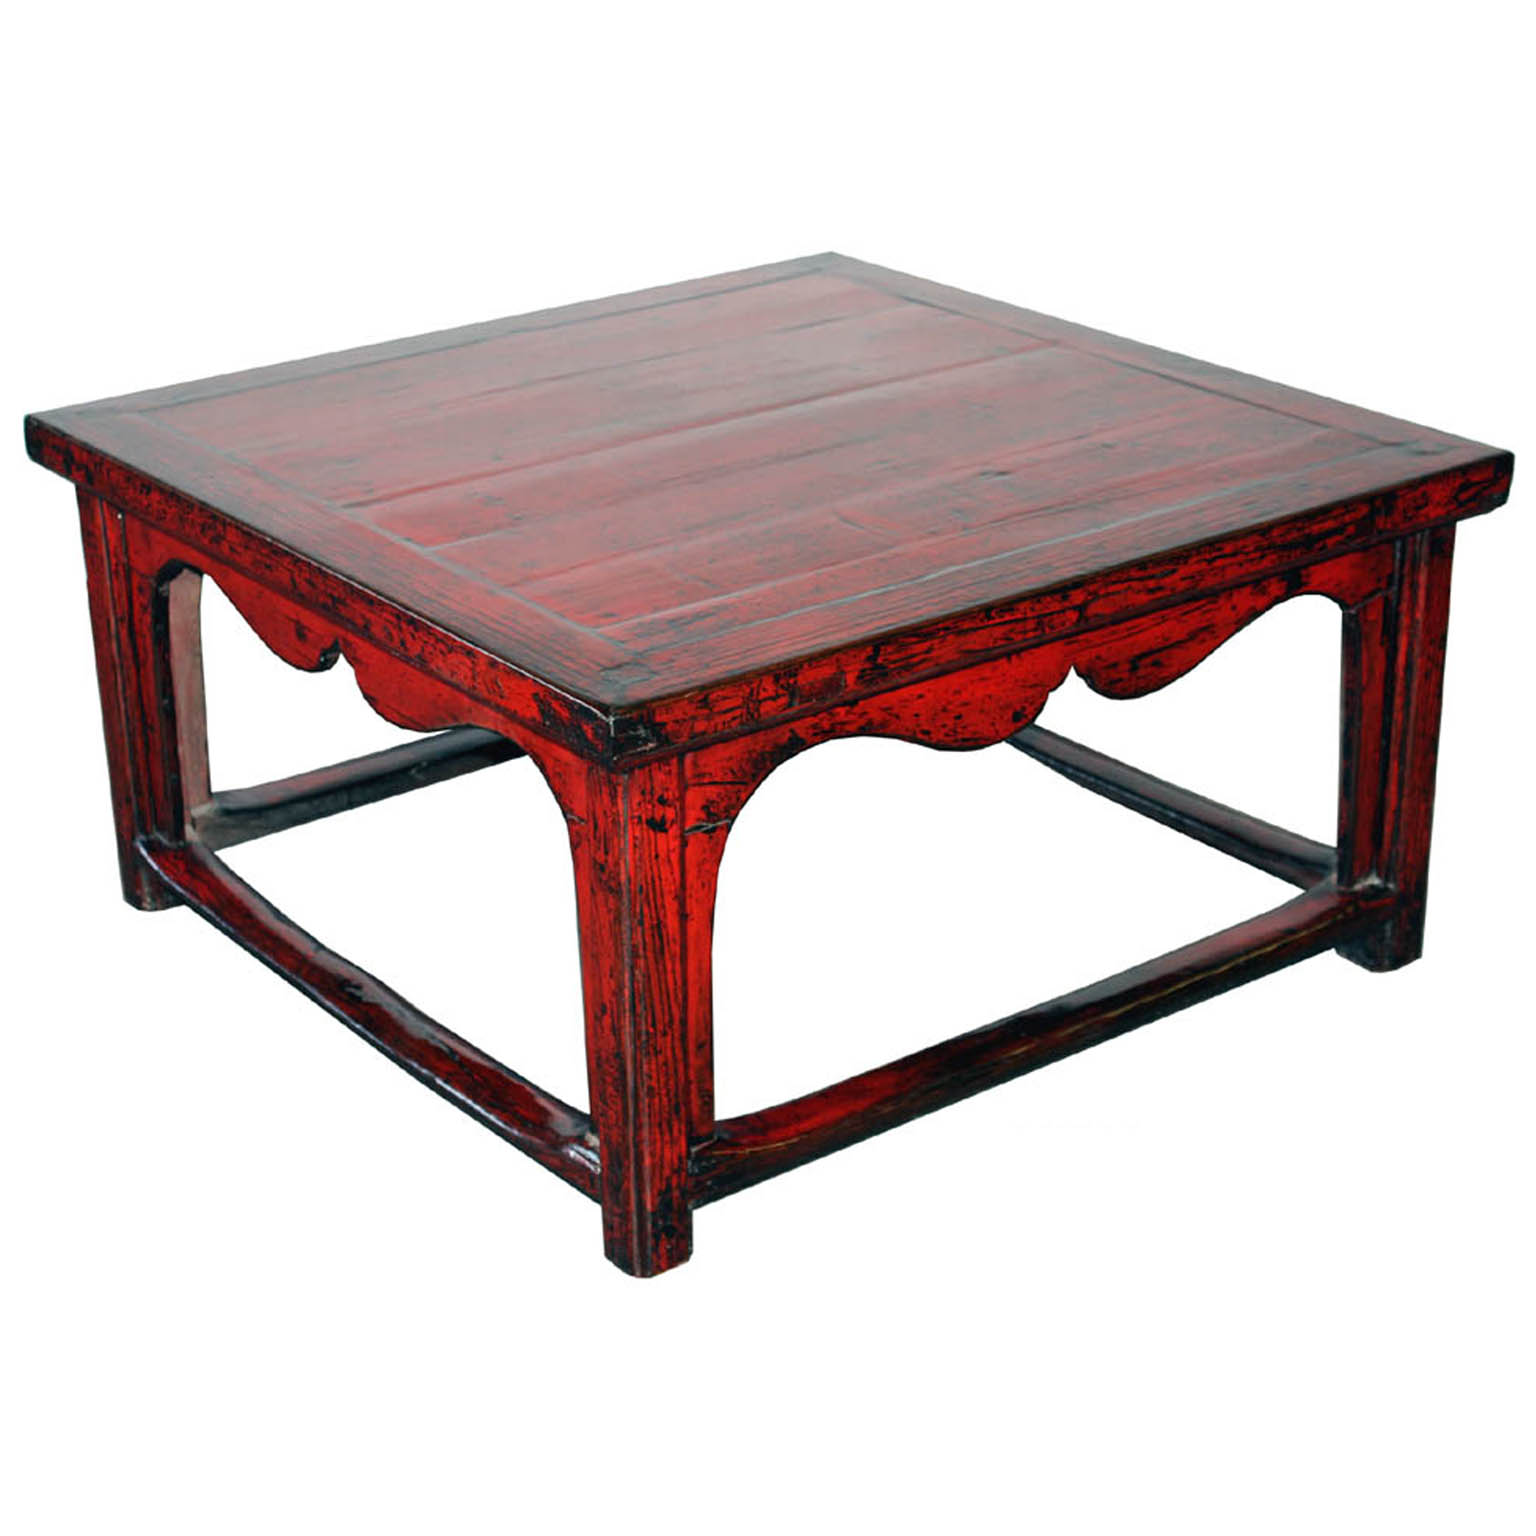 Beijing Red Coffee Table Red Coffee Tables Coffee Table Asian Home Decor [ 1536 x 1536 Pixel ]